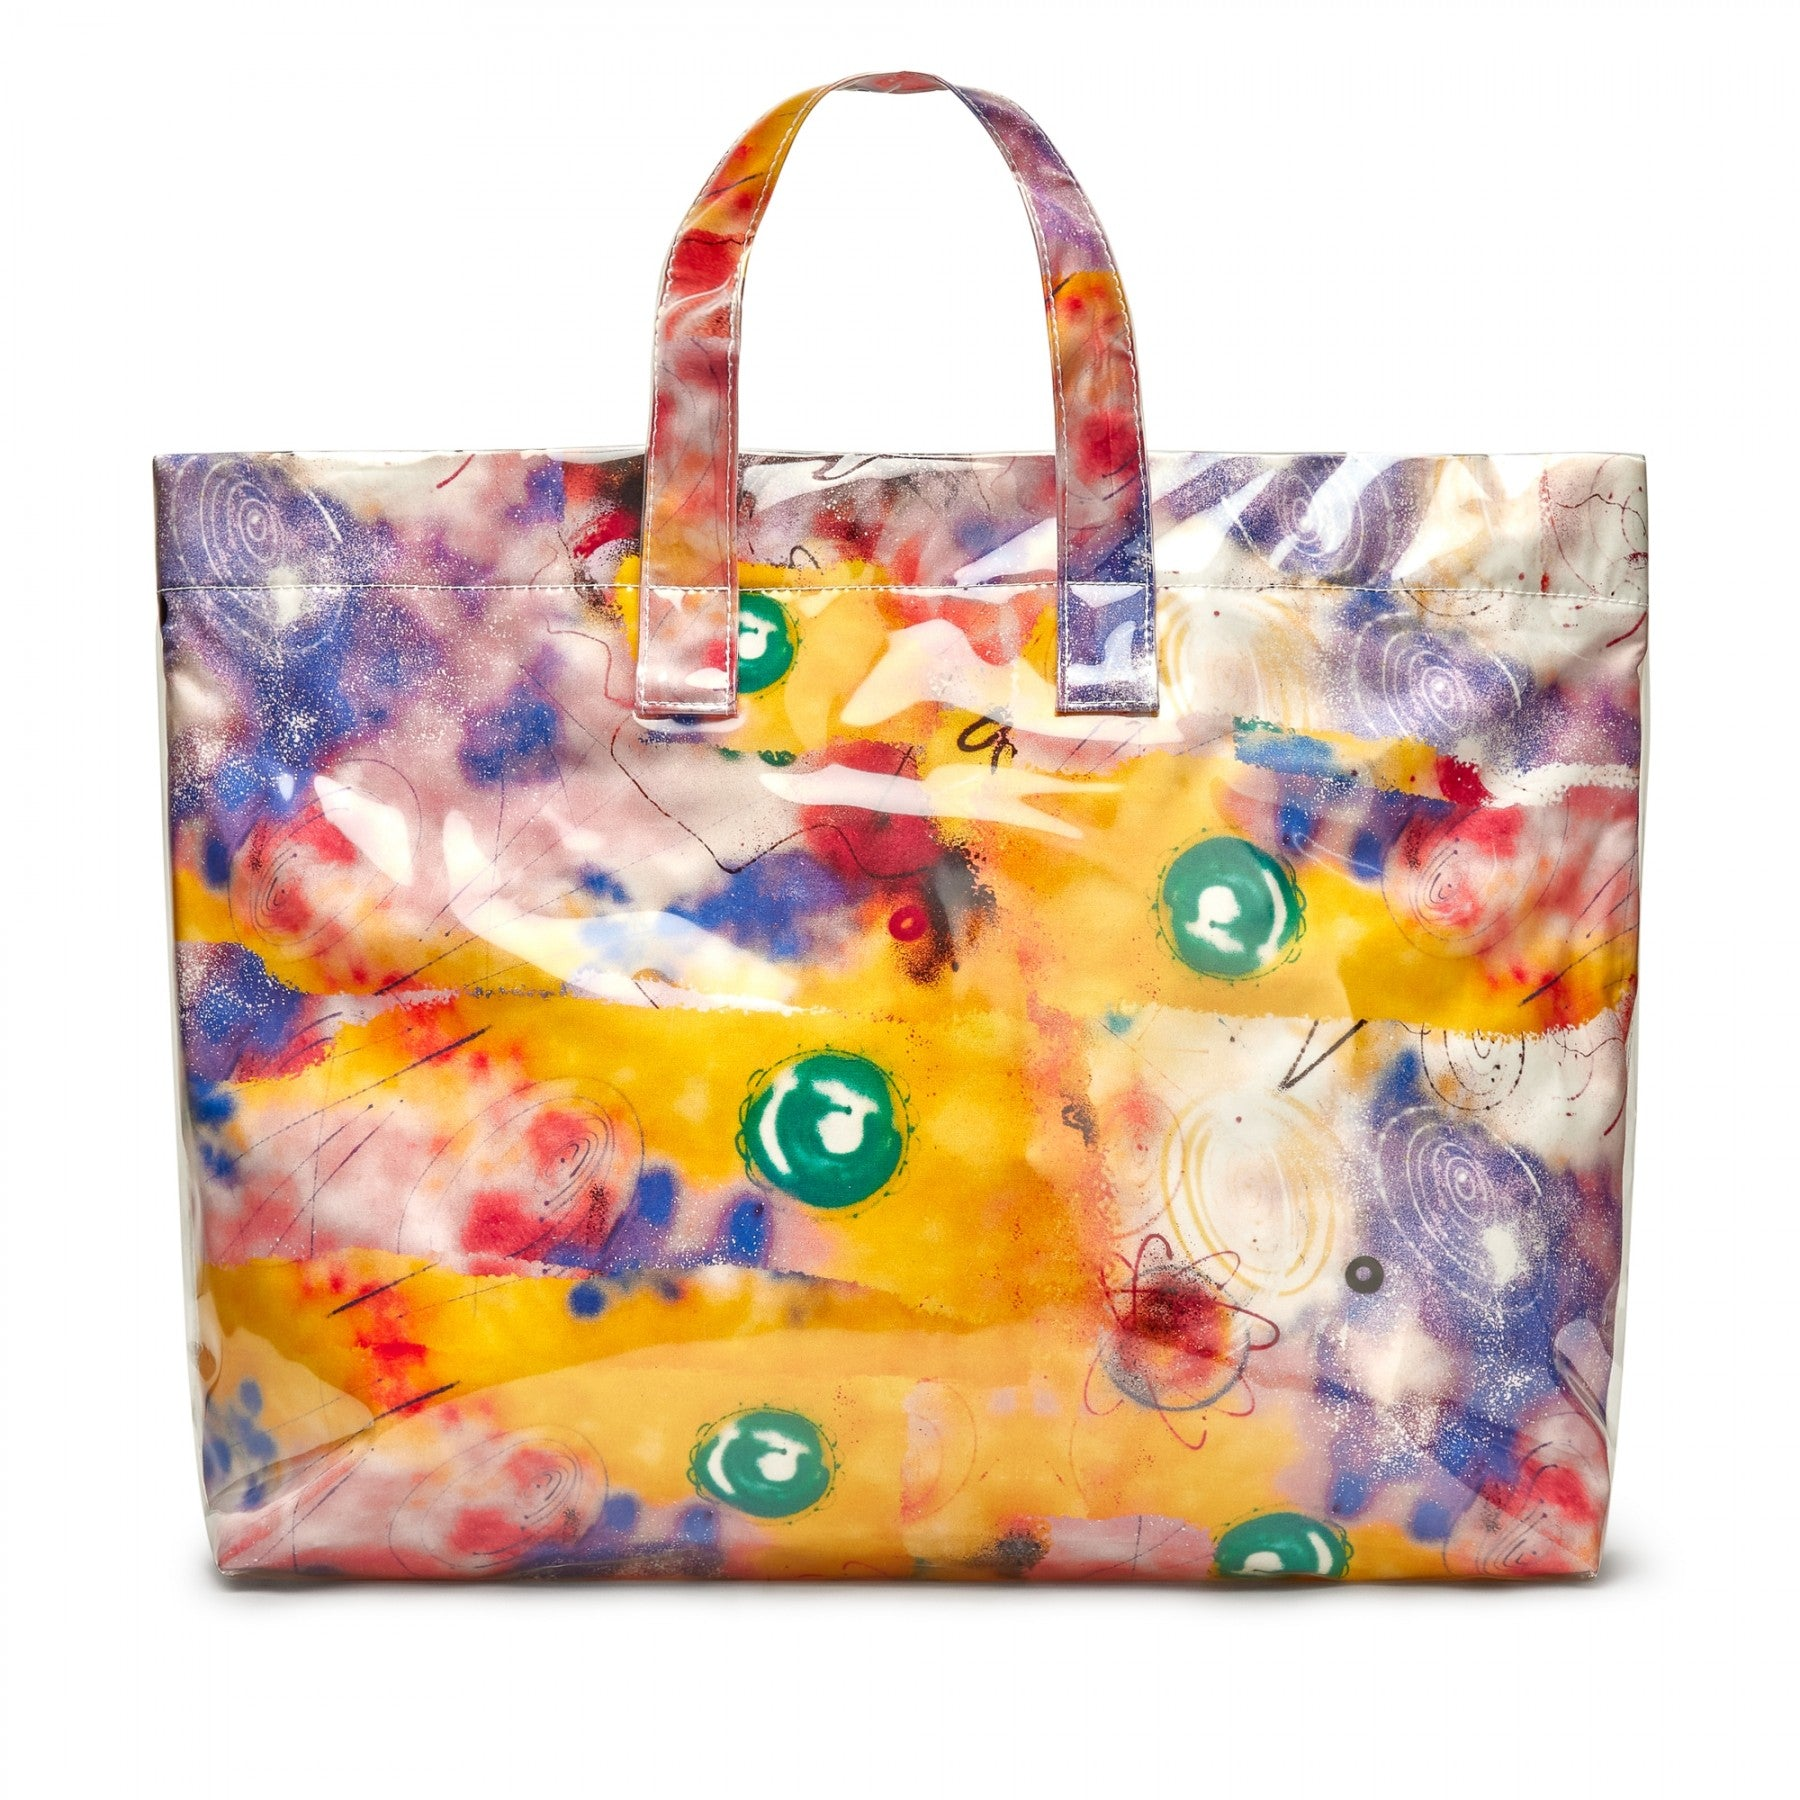 Yellow CDG SHIRT x Futura Tote Bag